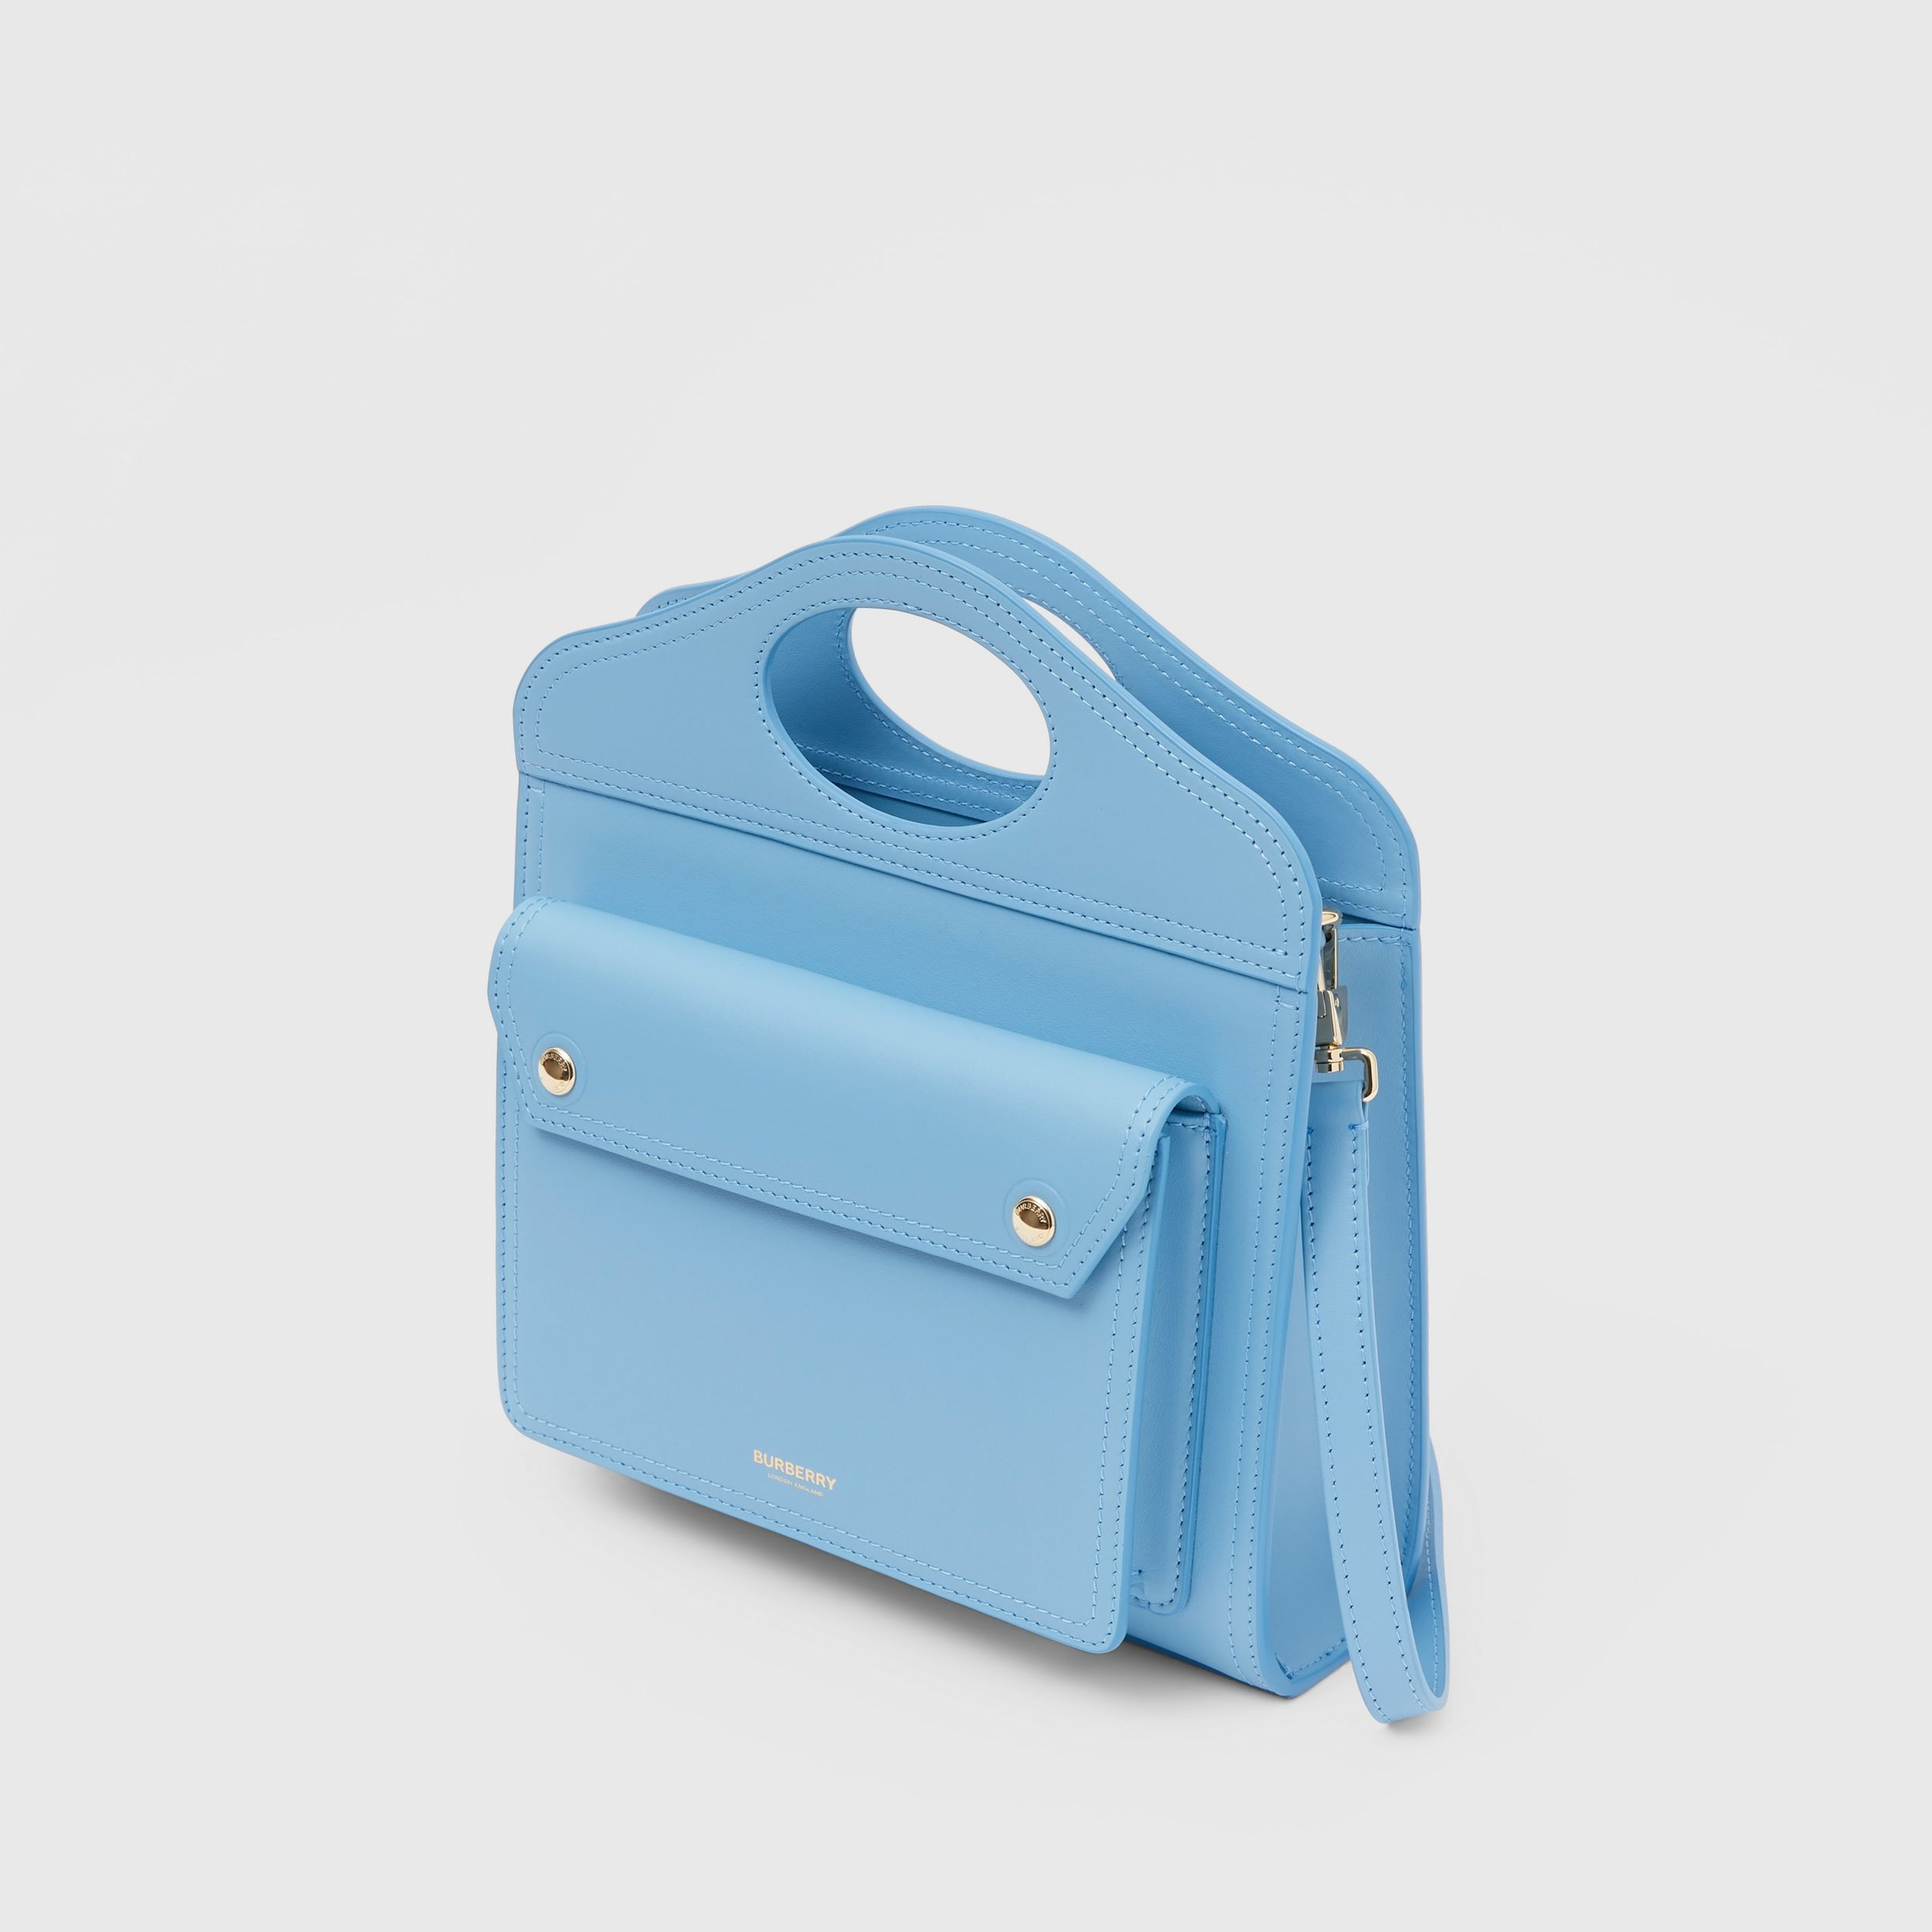 Mini Leather Pocket Bag in Blue Topaz - Women | Burberry Singapore - 4